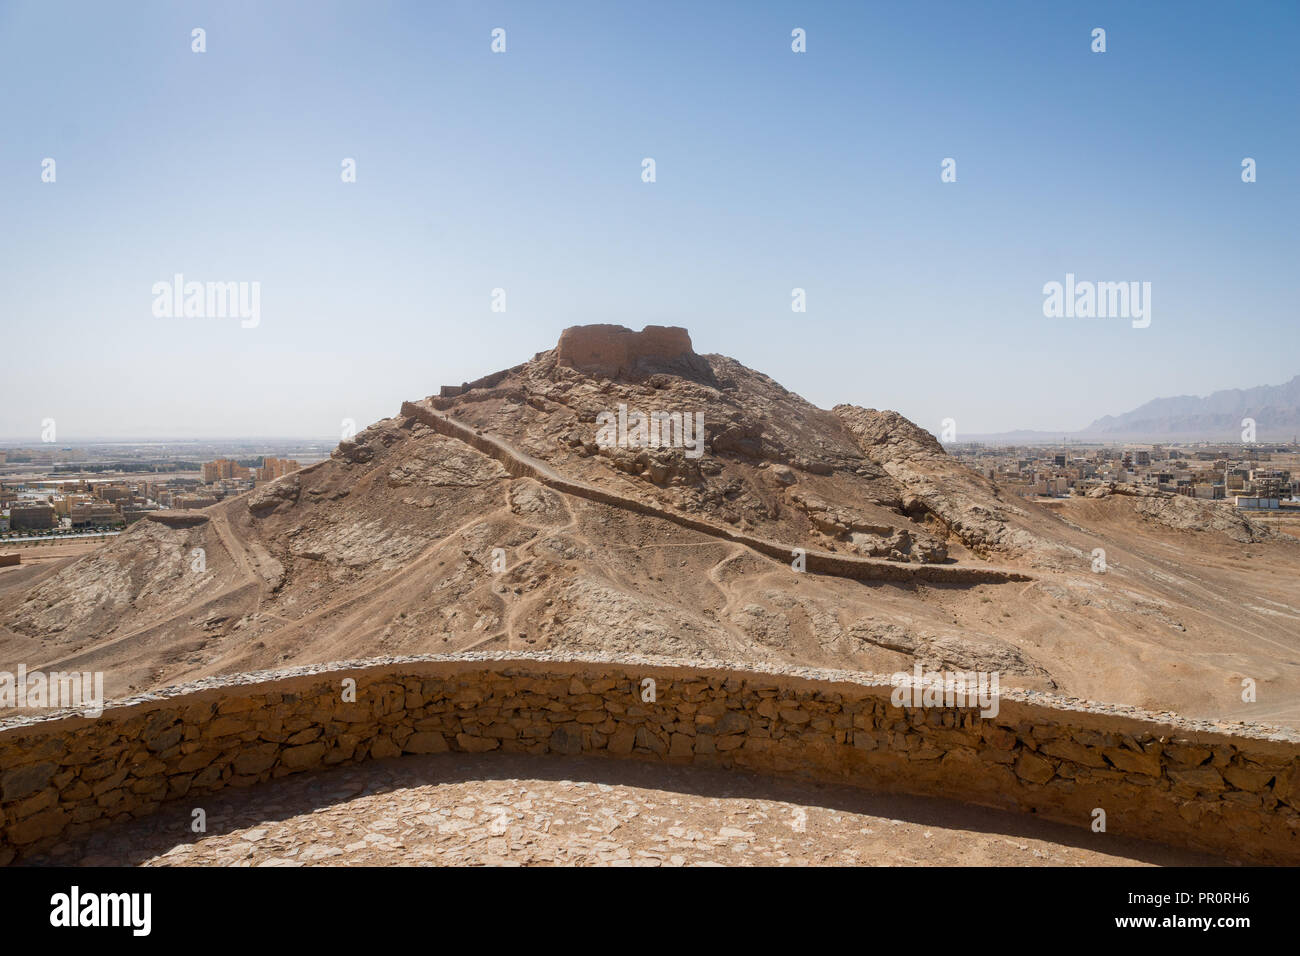 Tower of Silence, ancient zoroastrian mountain religious site in Yazd, Iran - Stock Image